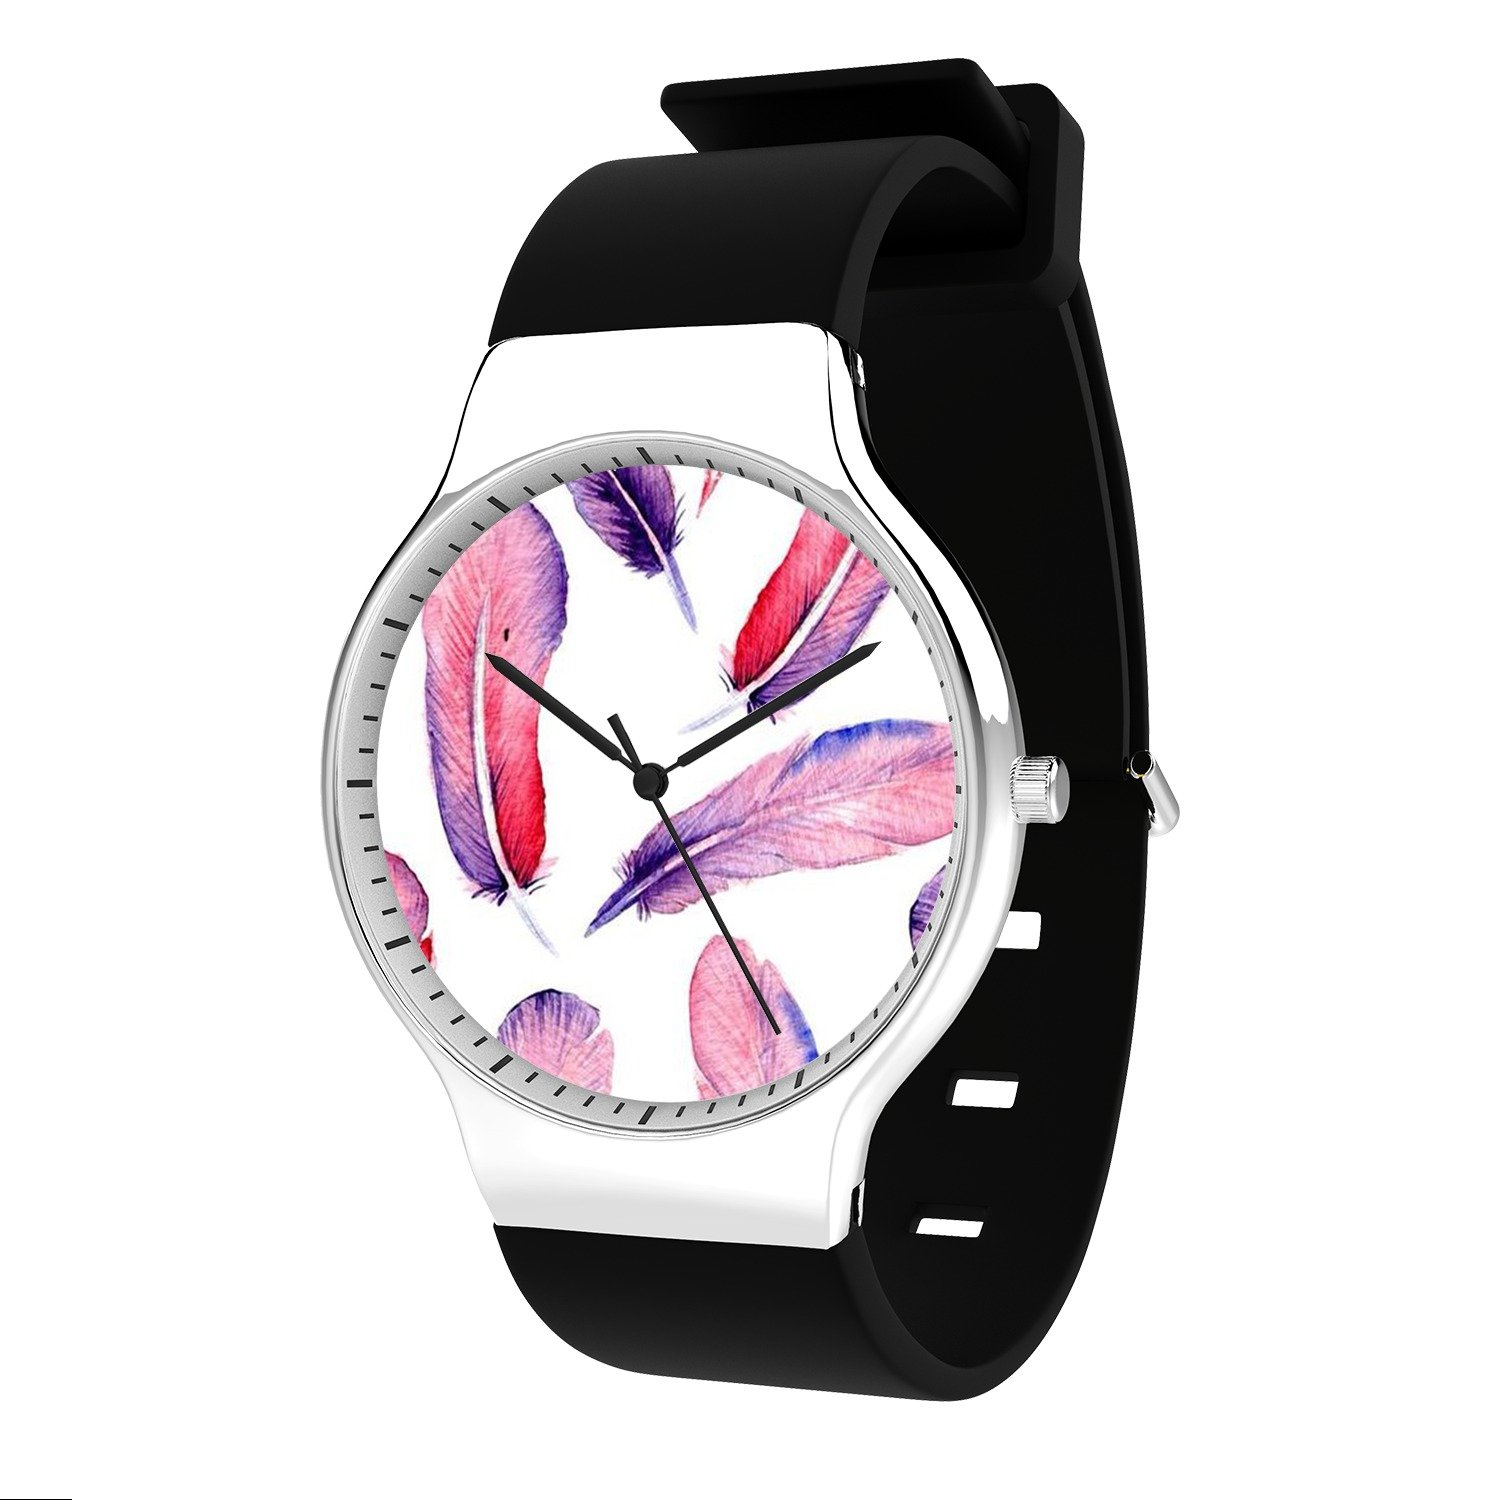 FELOOWSE Feather Watercolor Pink Watch Men's Quartz Watches, Minimalist Slim Japanese Quartz Youth Silicone Watches, Fashion PracticalWaterproof Boys Watch Customized Watches